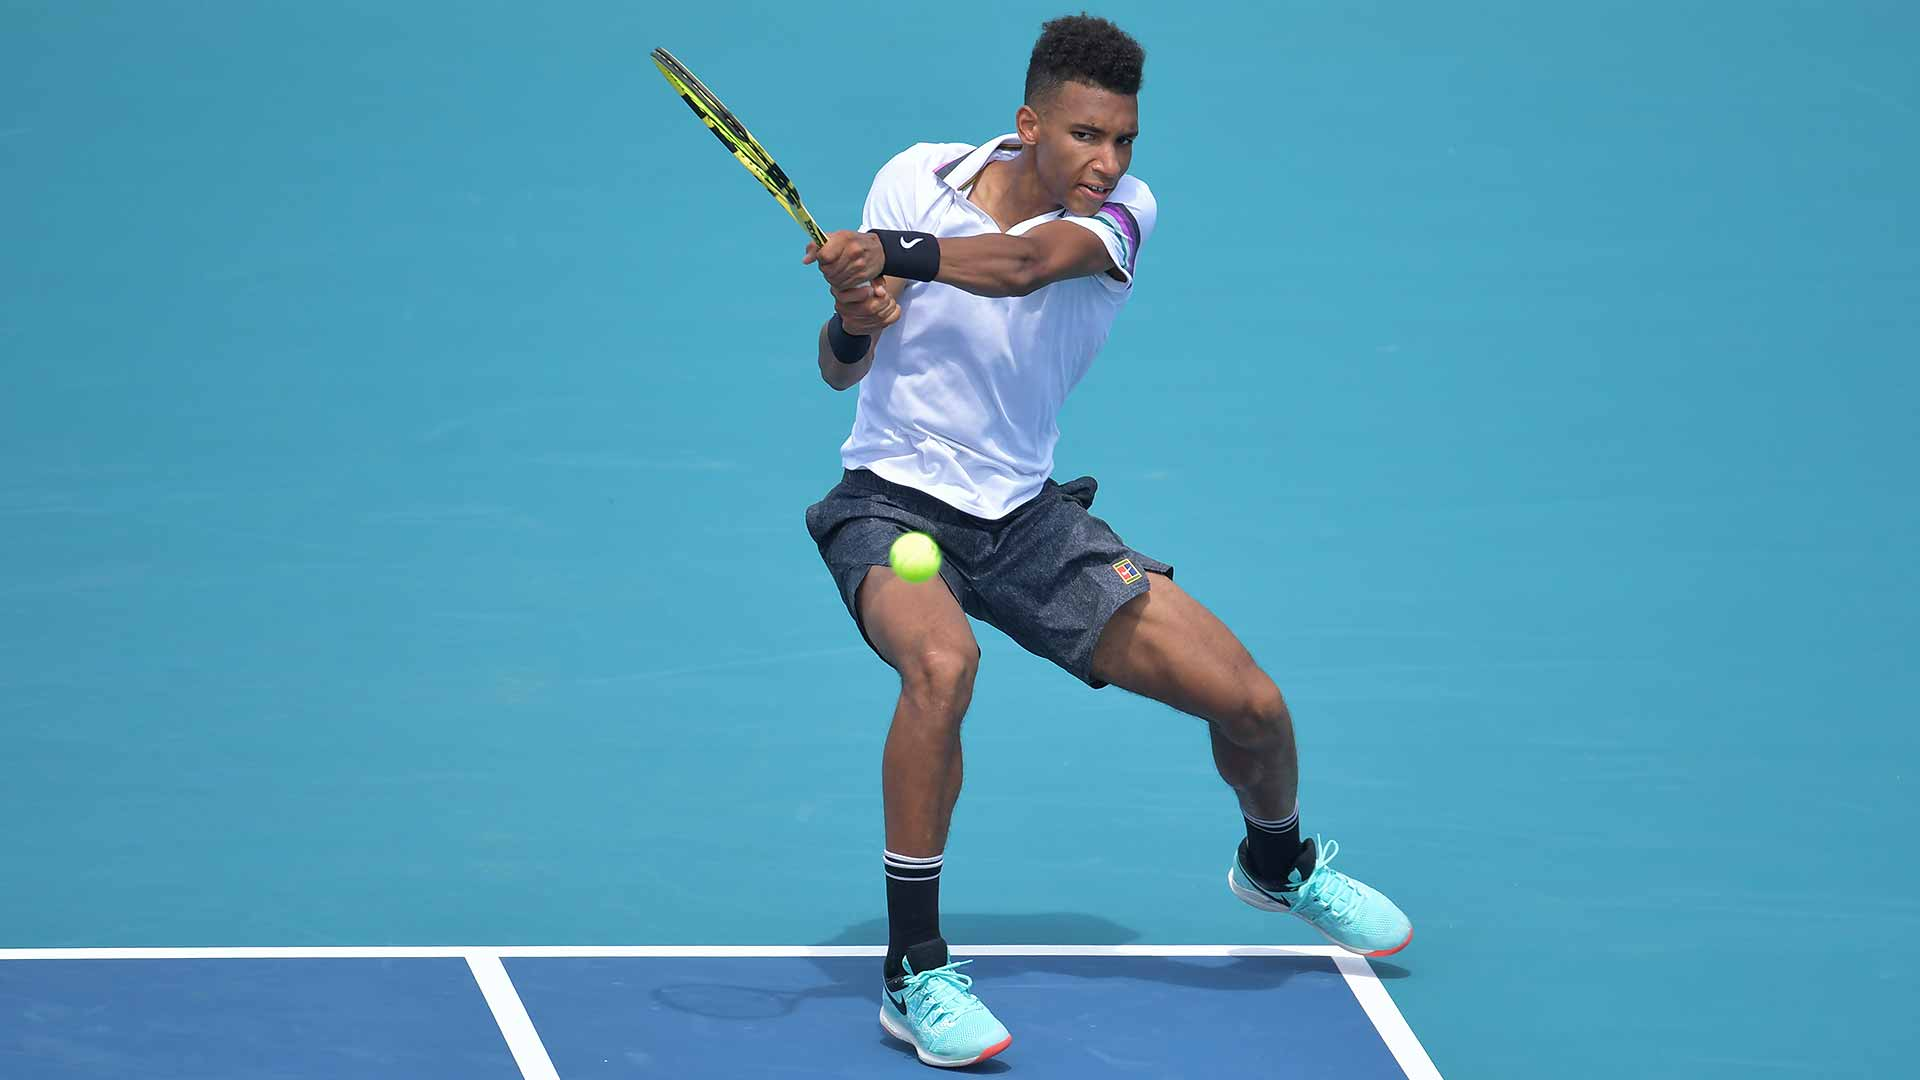 Felix Auger-Aliassime wins his first round of Miami Open qualifying